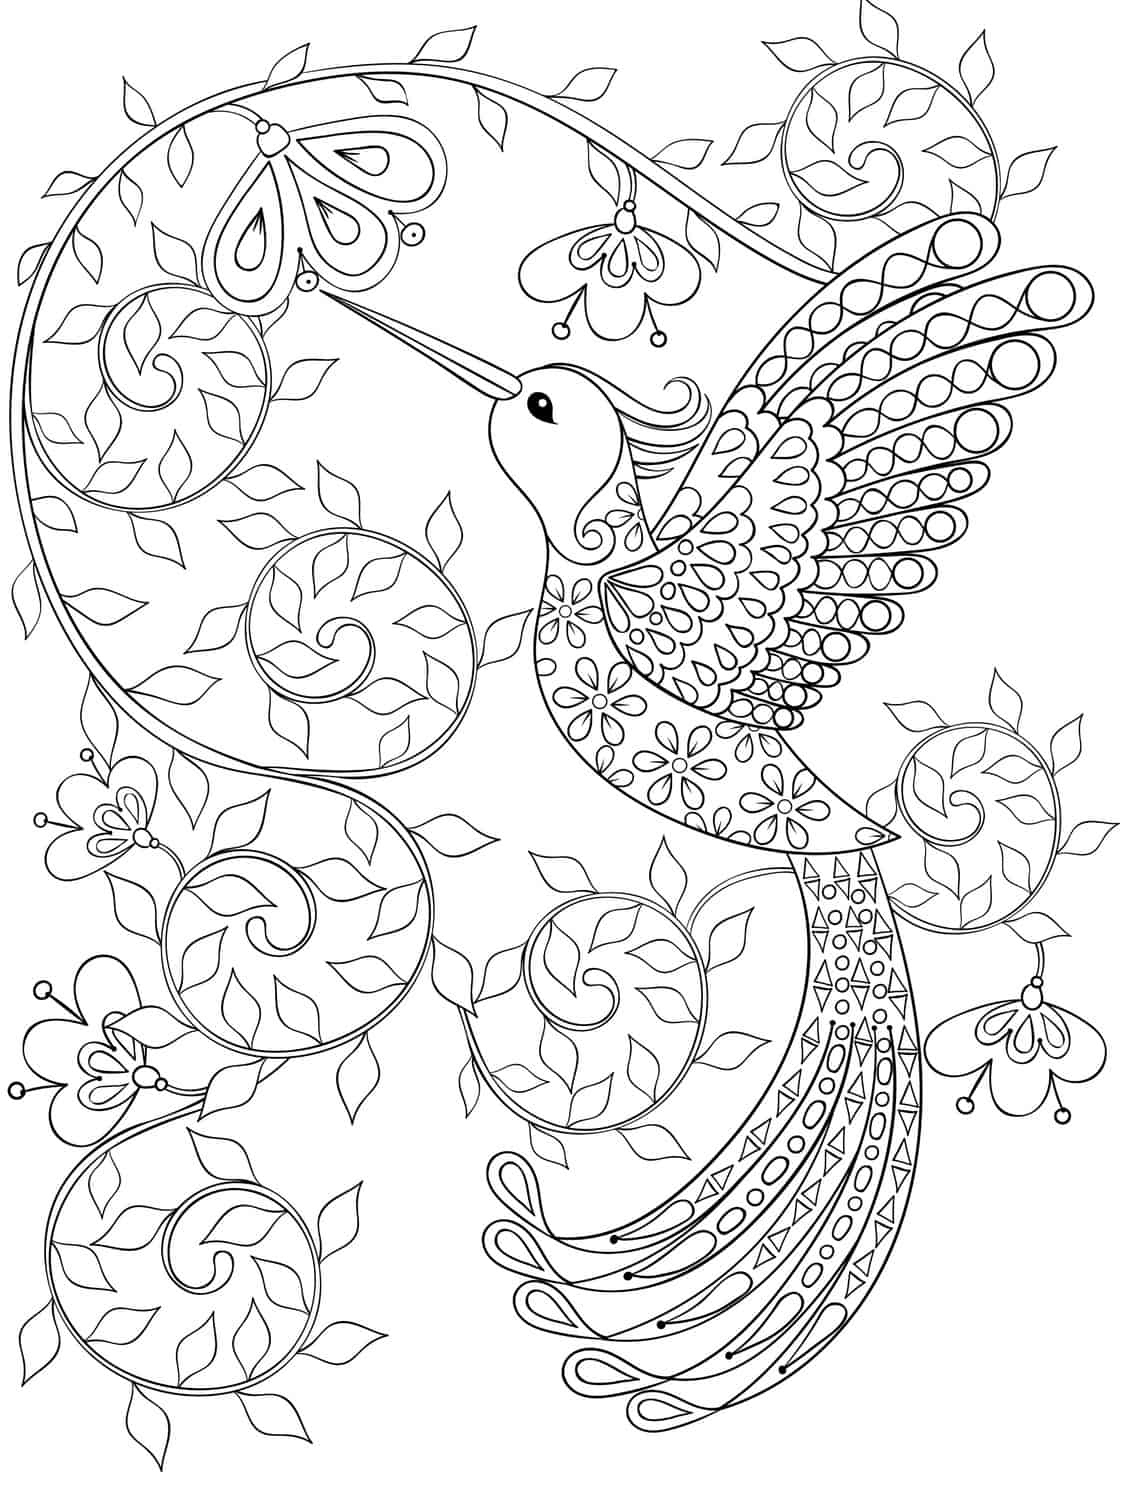 20 Gorgeous Free Printable Adult Coloring Pages - Page 11 ...